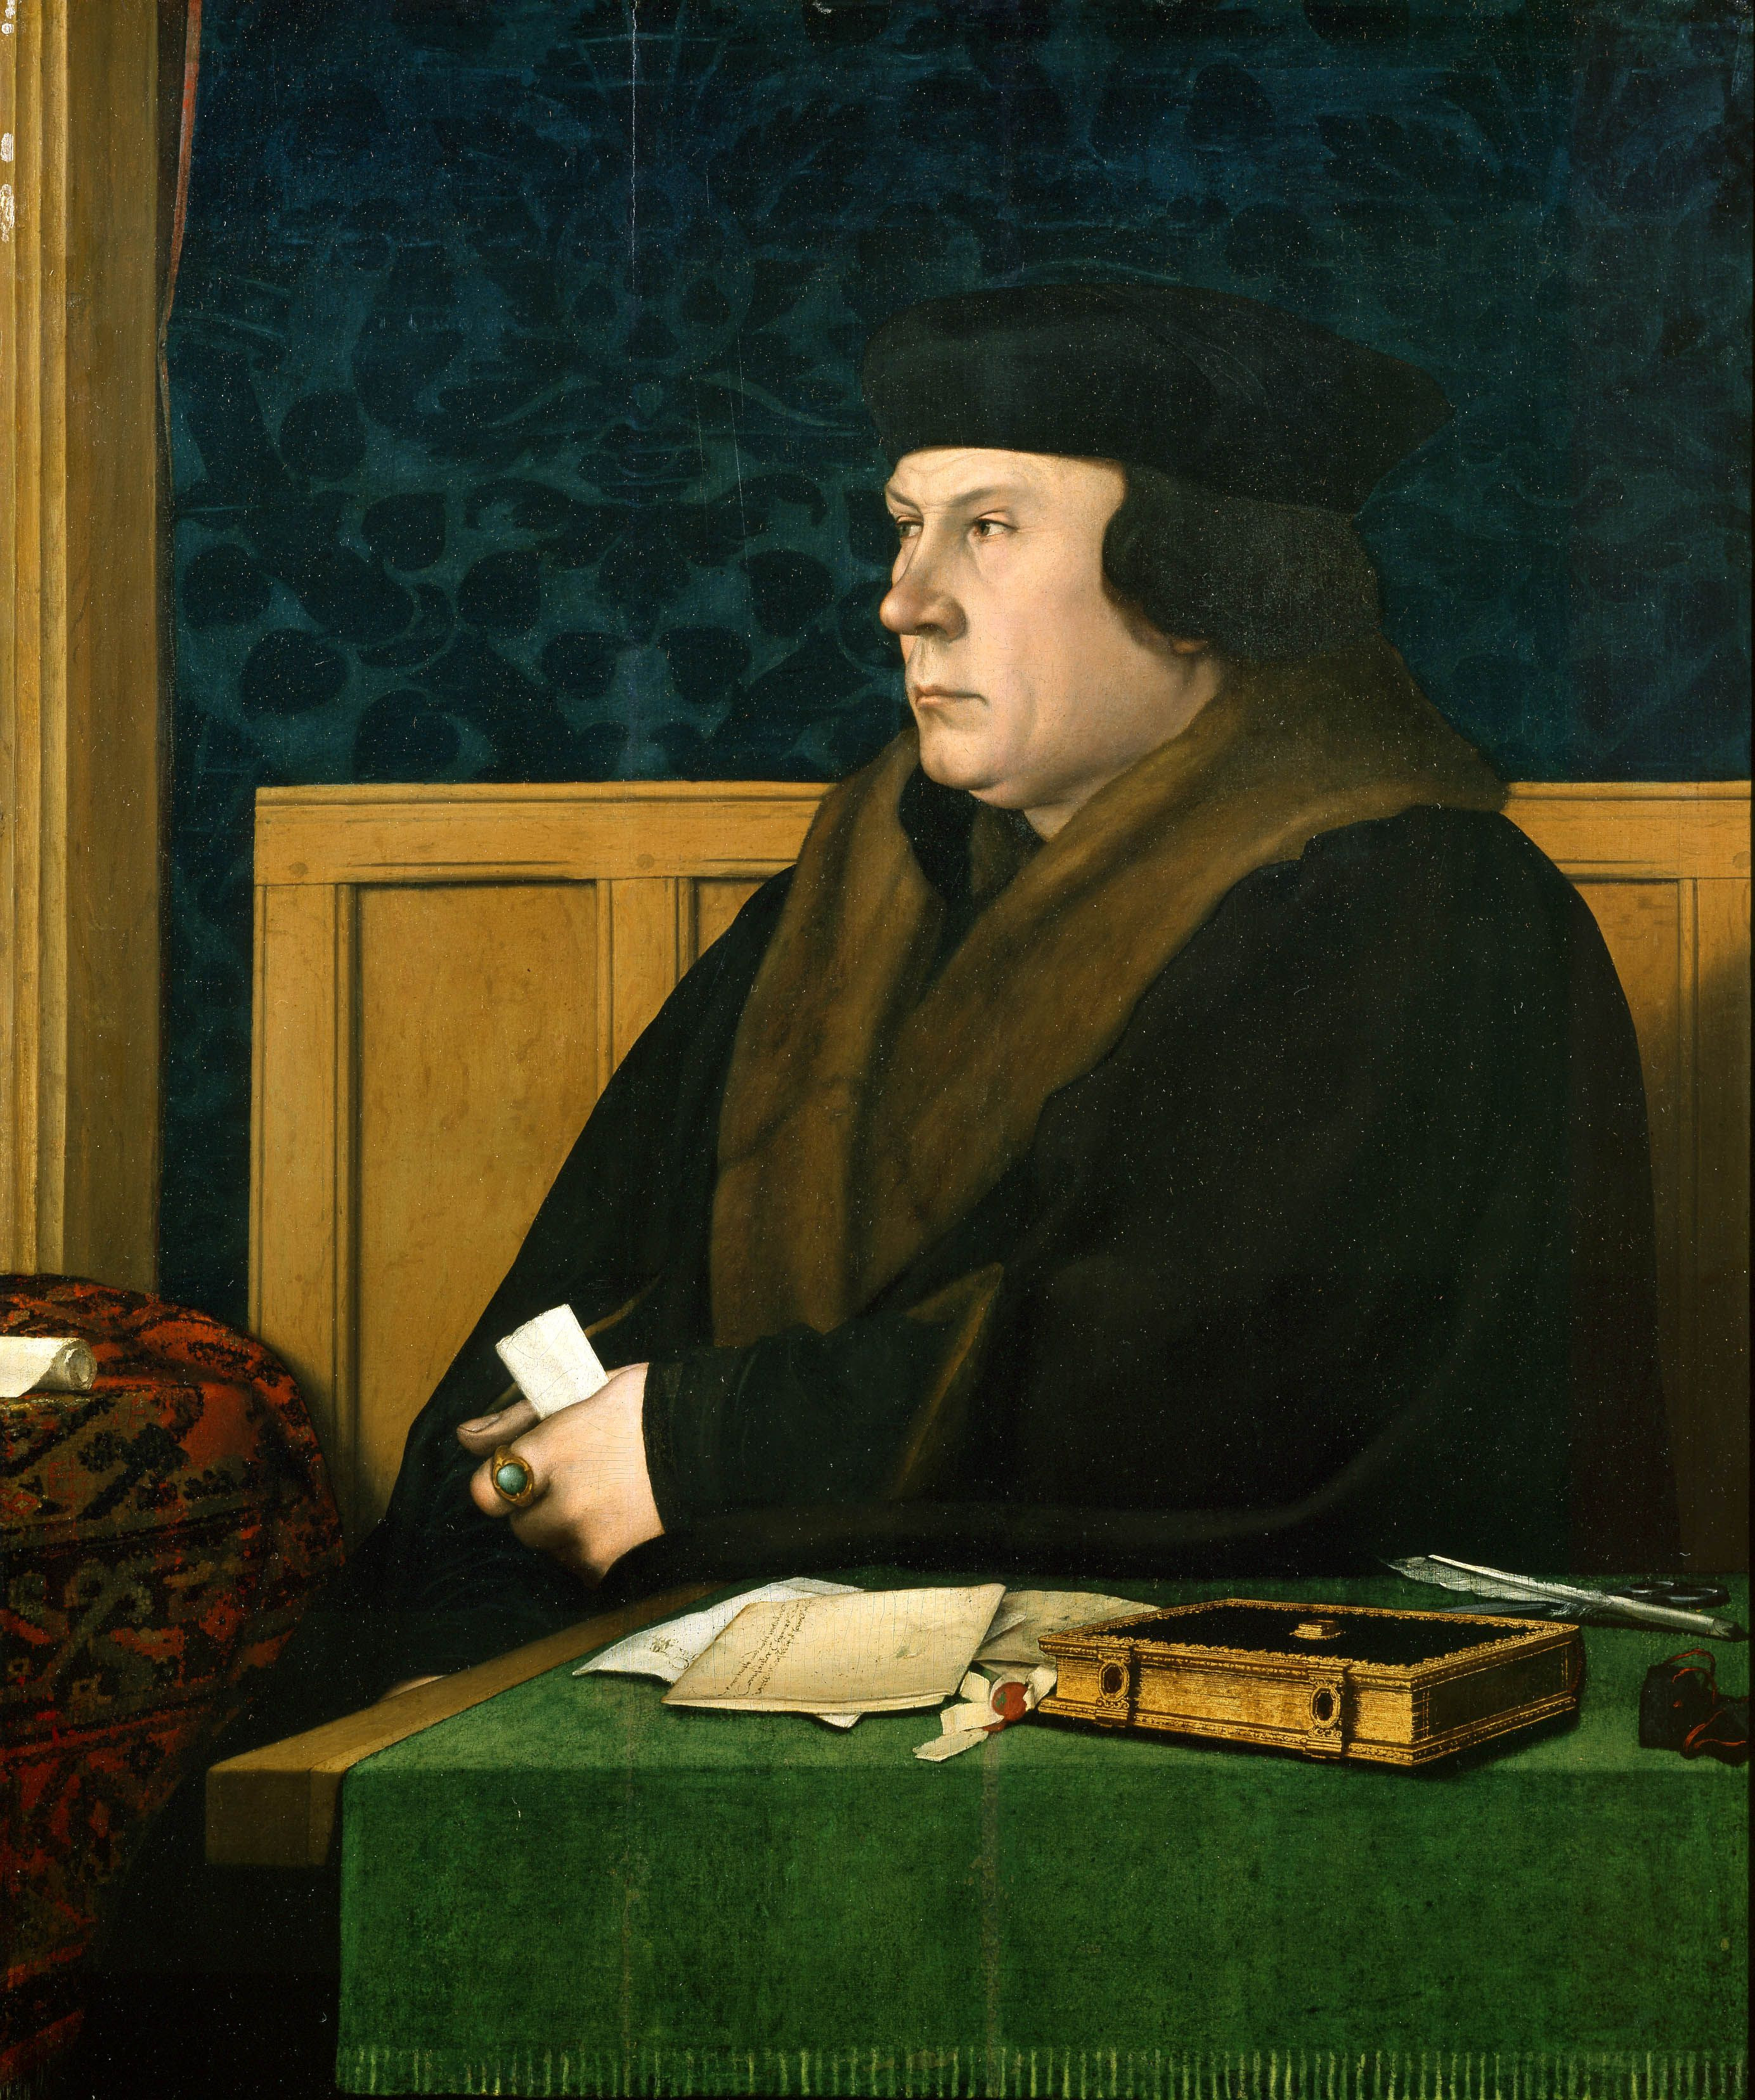 Thomas Cromwell, portrait by Hans Holbein the Younger, 1532–1533